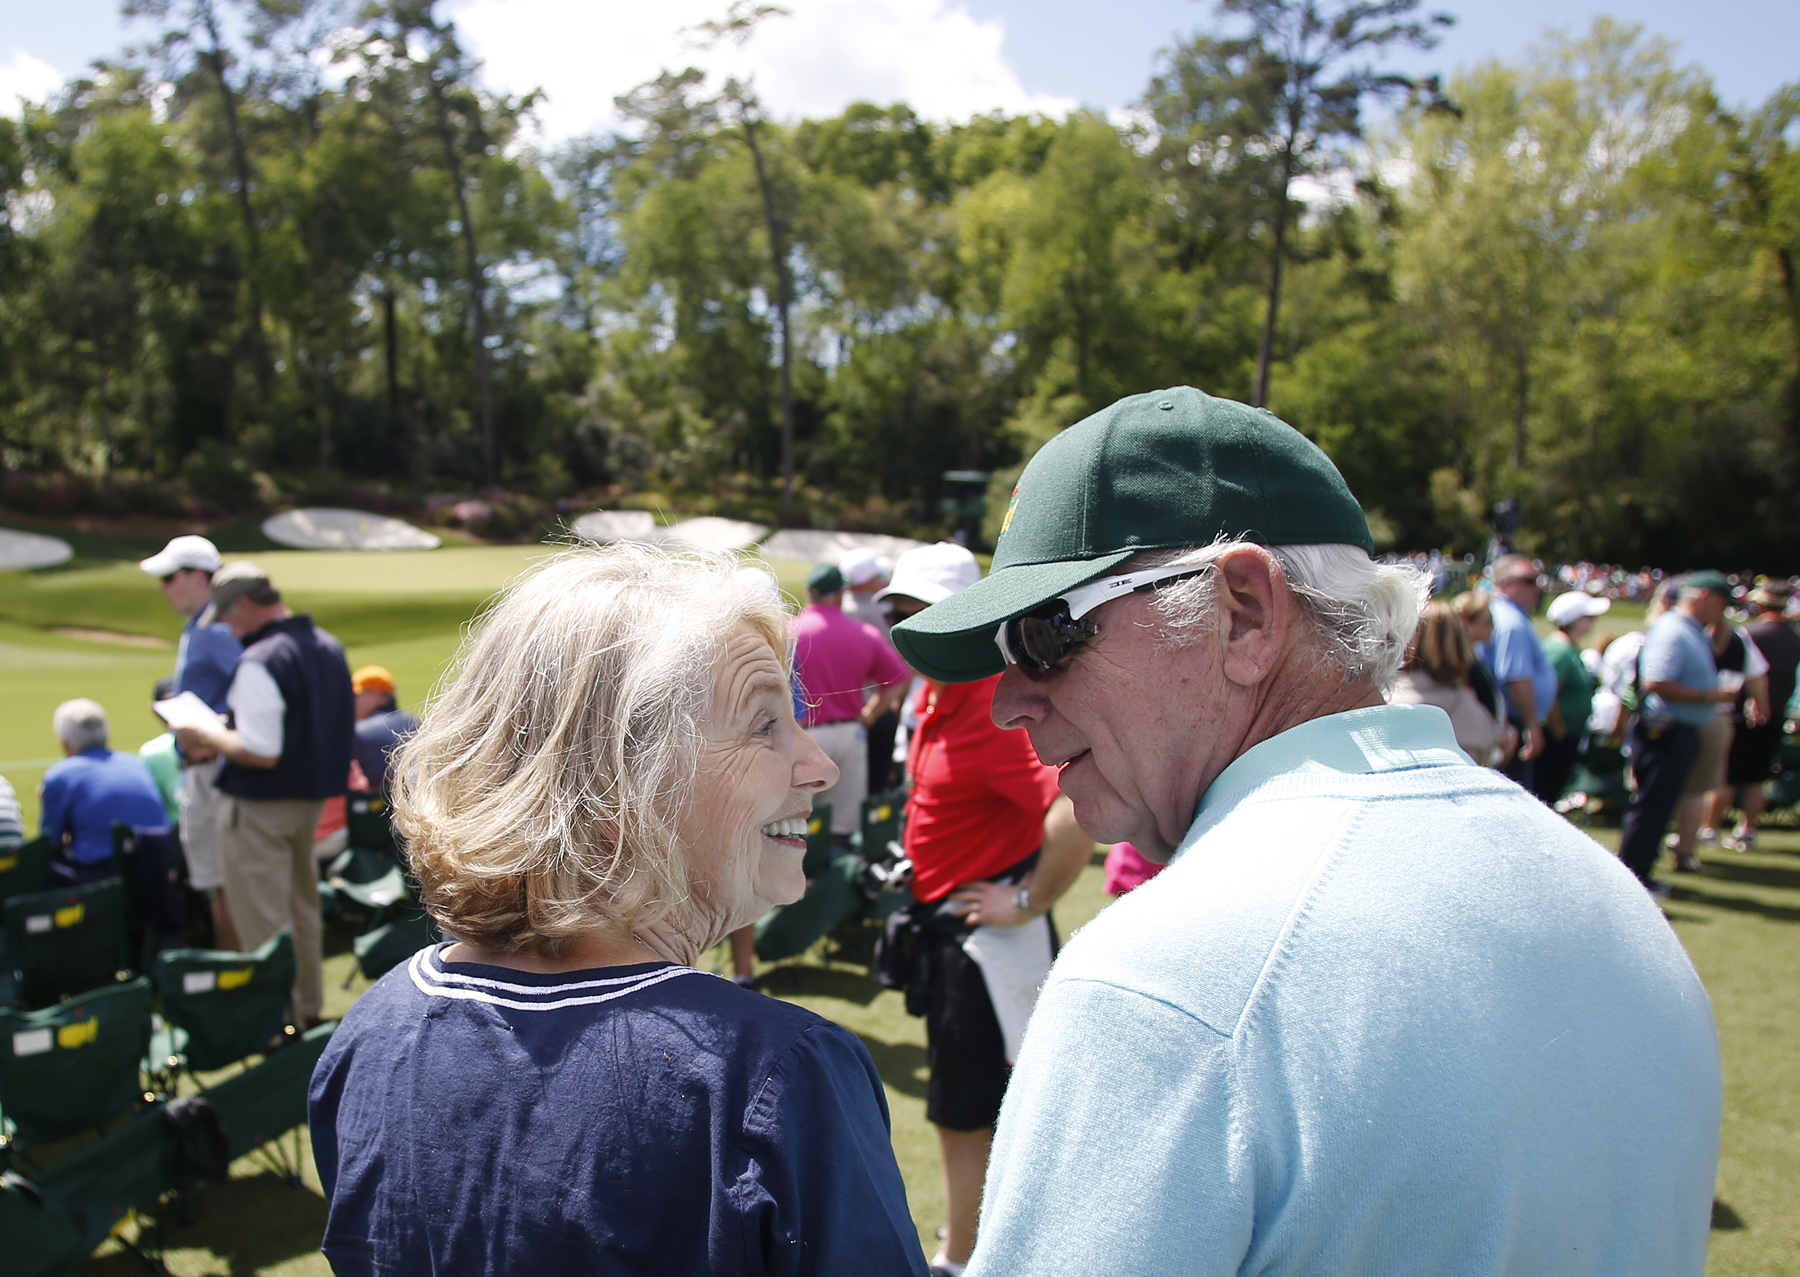 Couple found love on the fairway in 1963